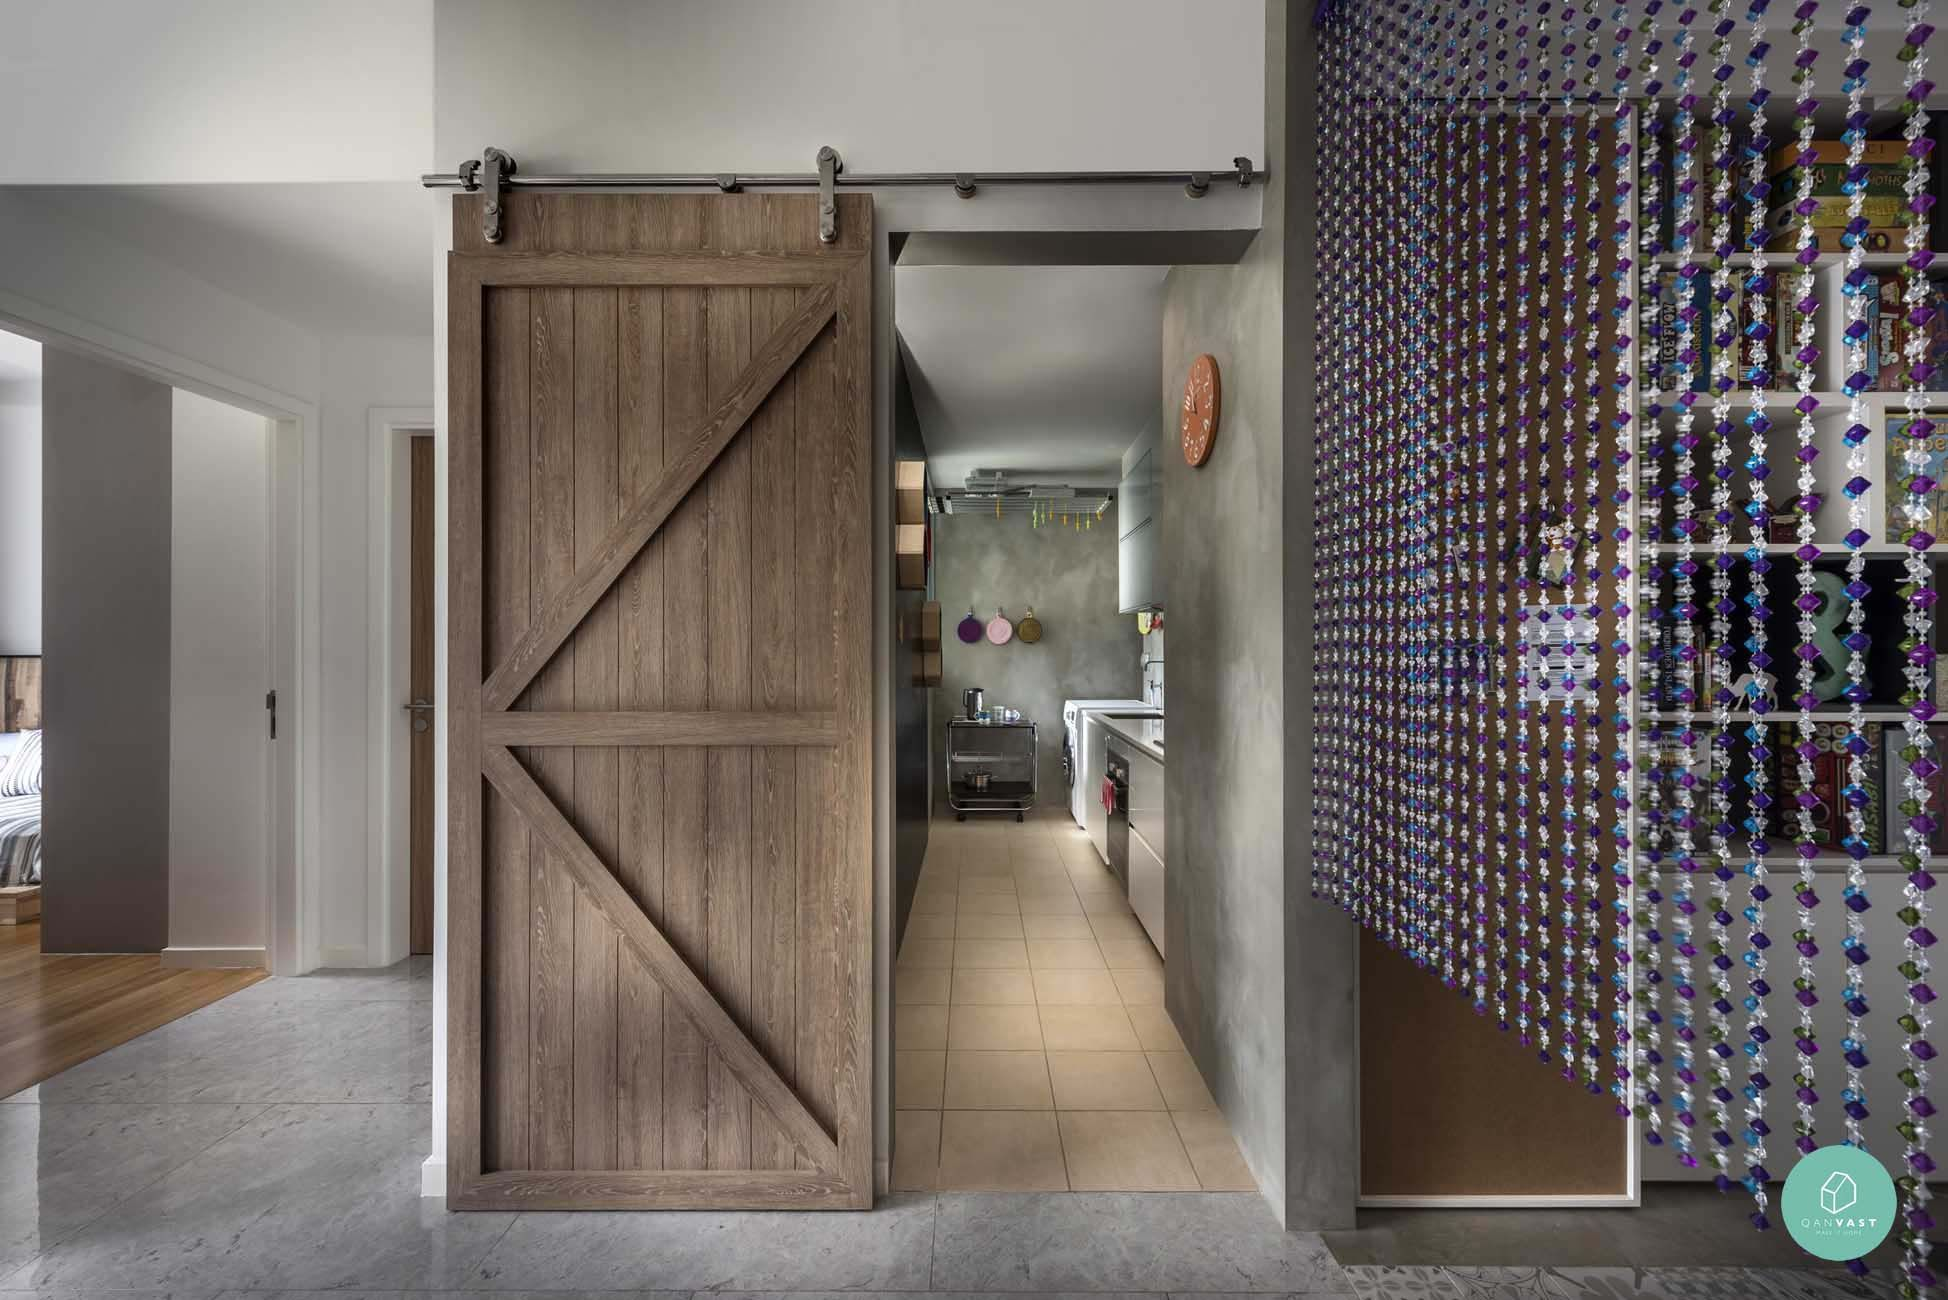 Prozfile Canberra Residence & 10 Quirky Crazy Cool Homes in Singapore | Apartment interior ...